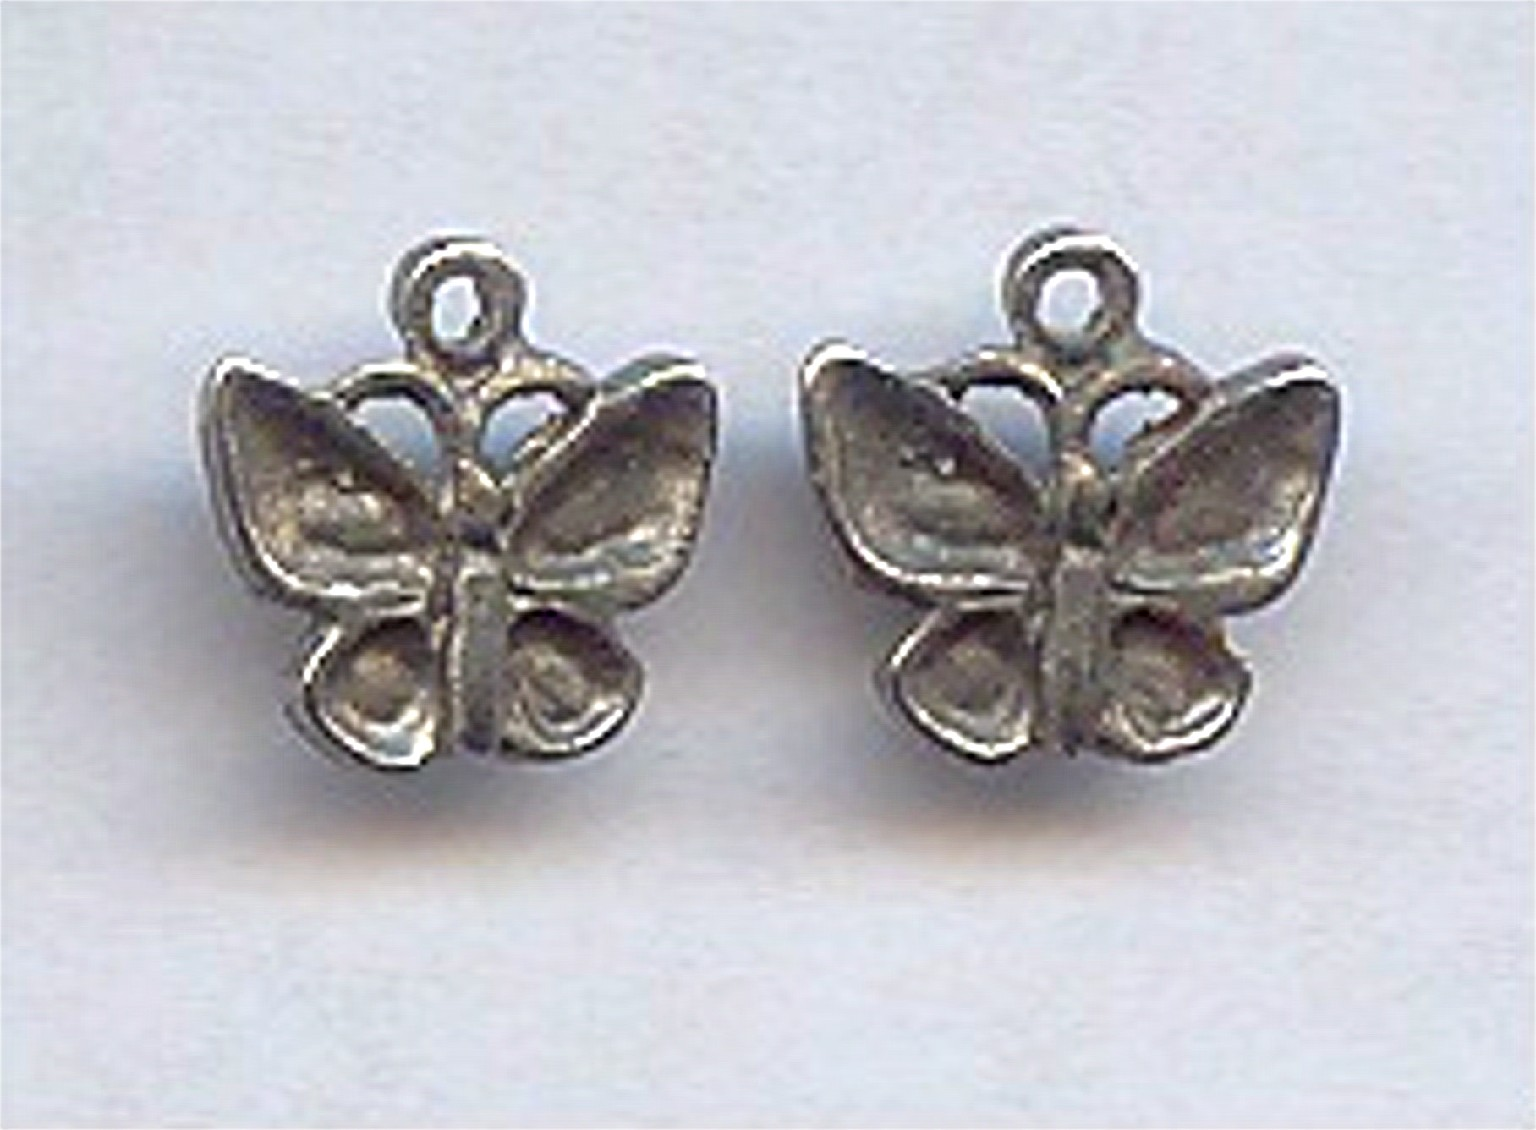 5 VINTAGE ANTIQUE SILVER 14X14mm BUTTERFLY CHARMS